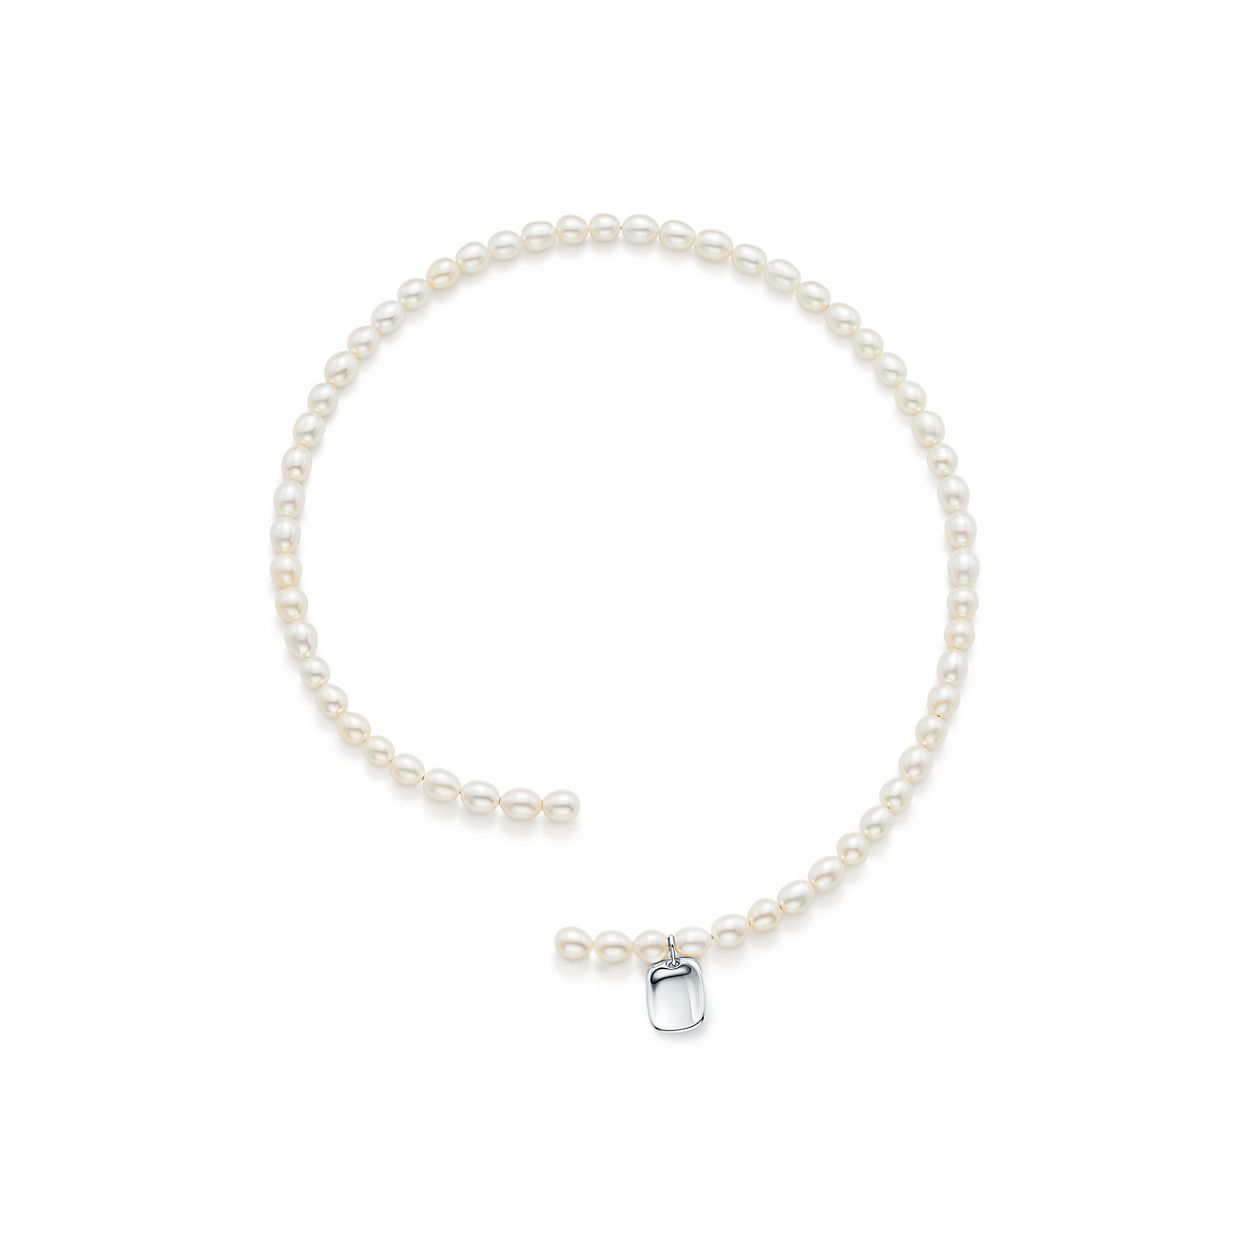 Elsa Peretti freshwater pearl necklace with sterling silver star charm Tiffany & Co. yqpBCe